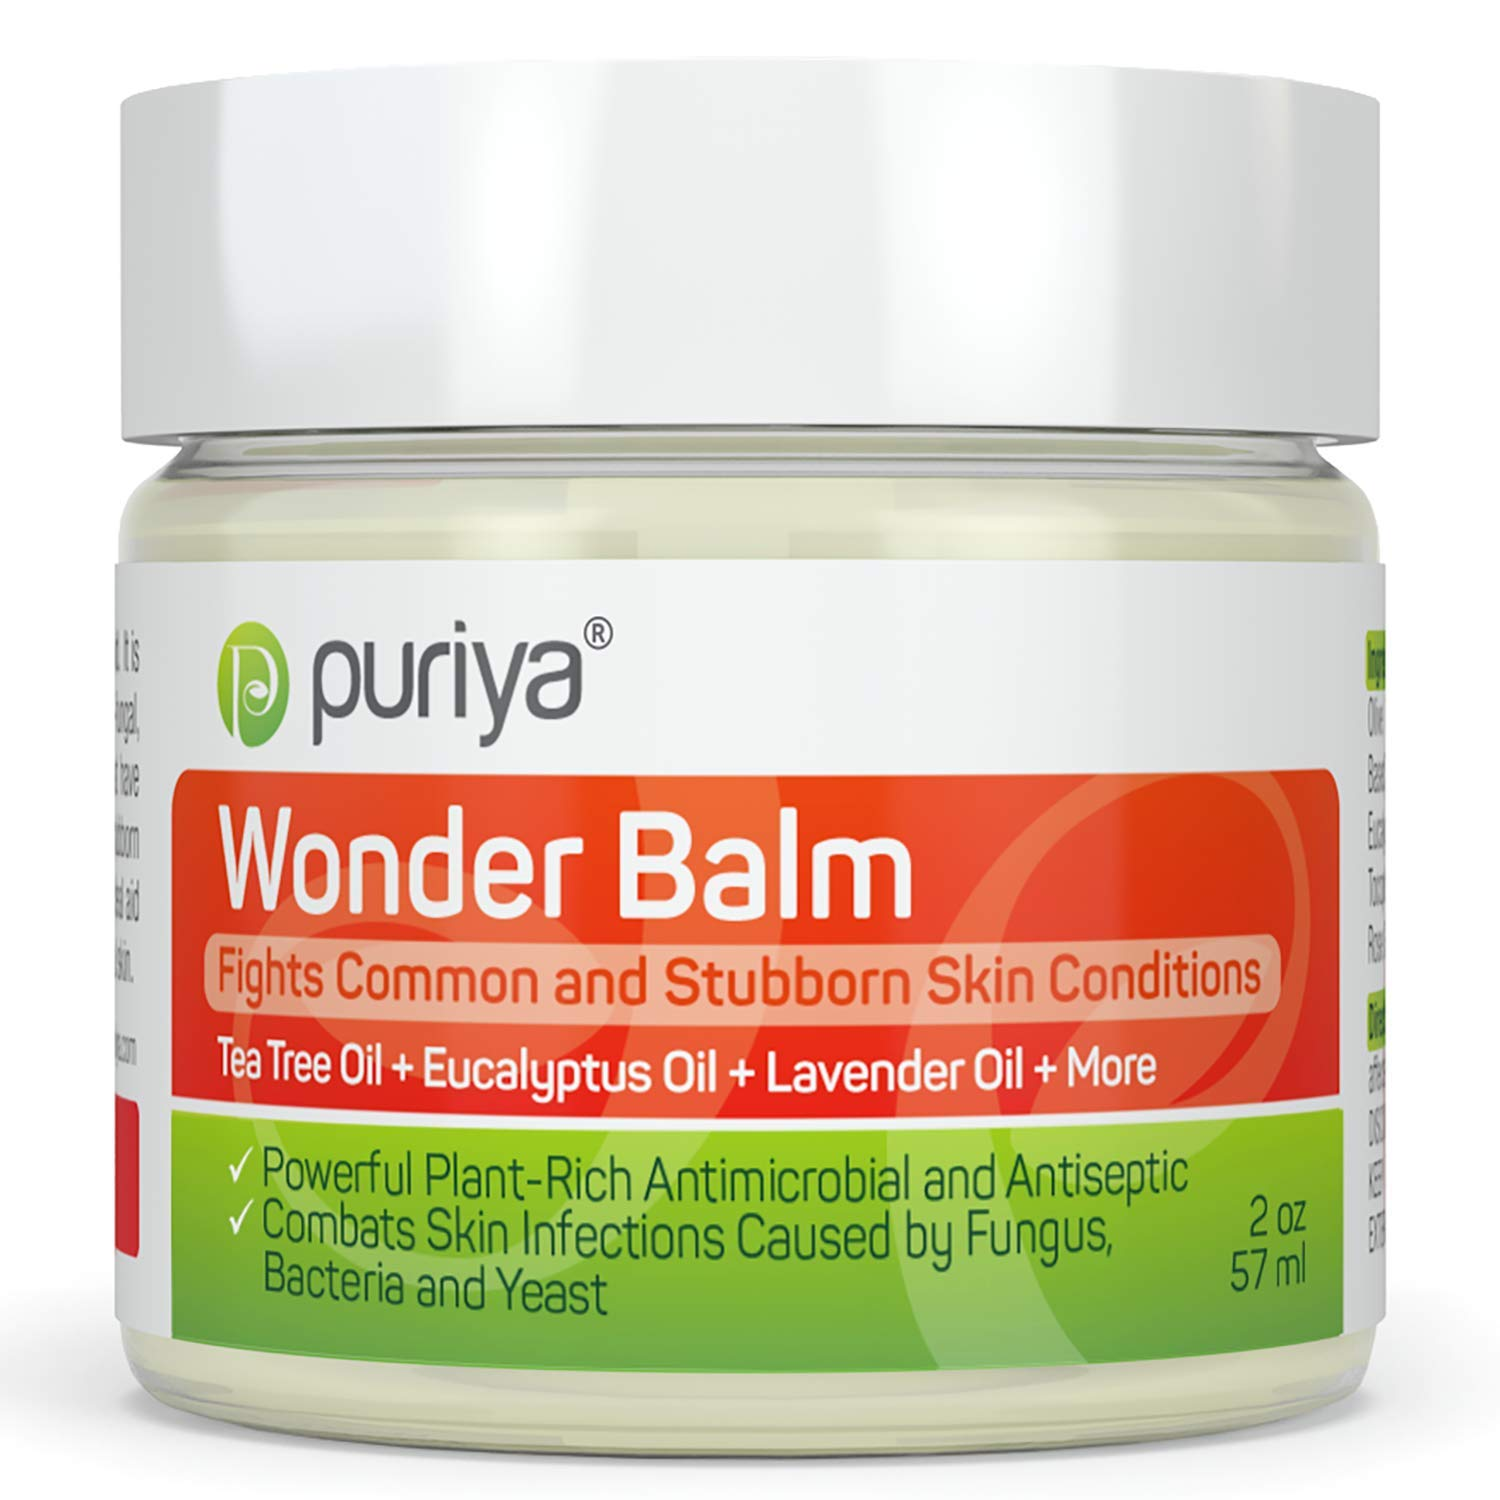 Puriya Tea Tree Oil Balm. Apply on feet, Nails, Groin, Chest. - Award Winning - Trusted by 200K Users - Forms a Skin Defense Layer in Humid Conditions. Use It Before and After Gym, Yoga, Pool, Sauna by Puriya